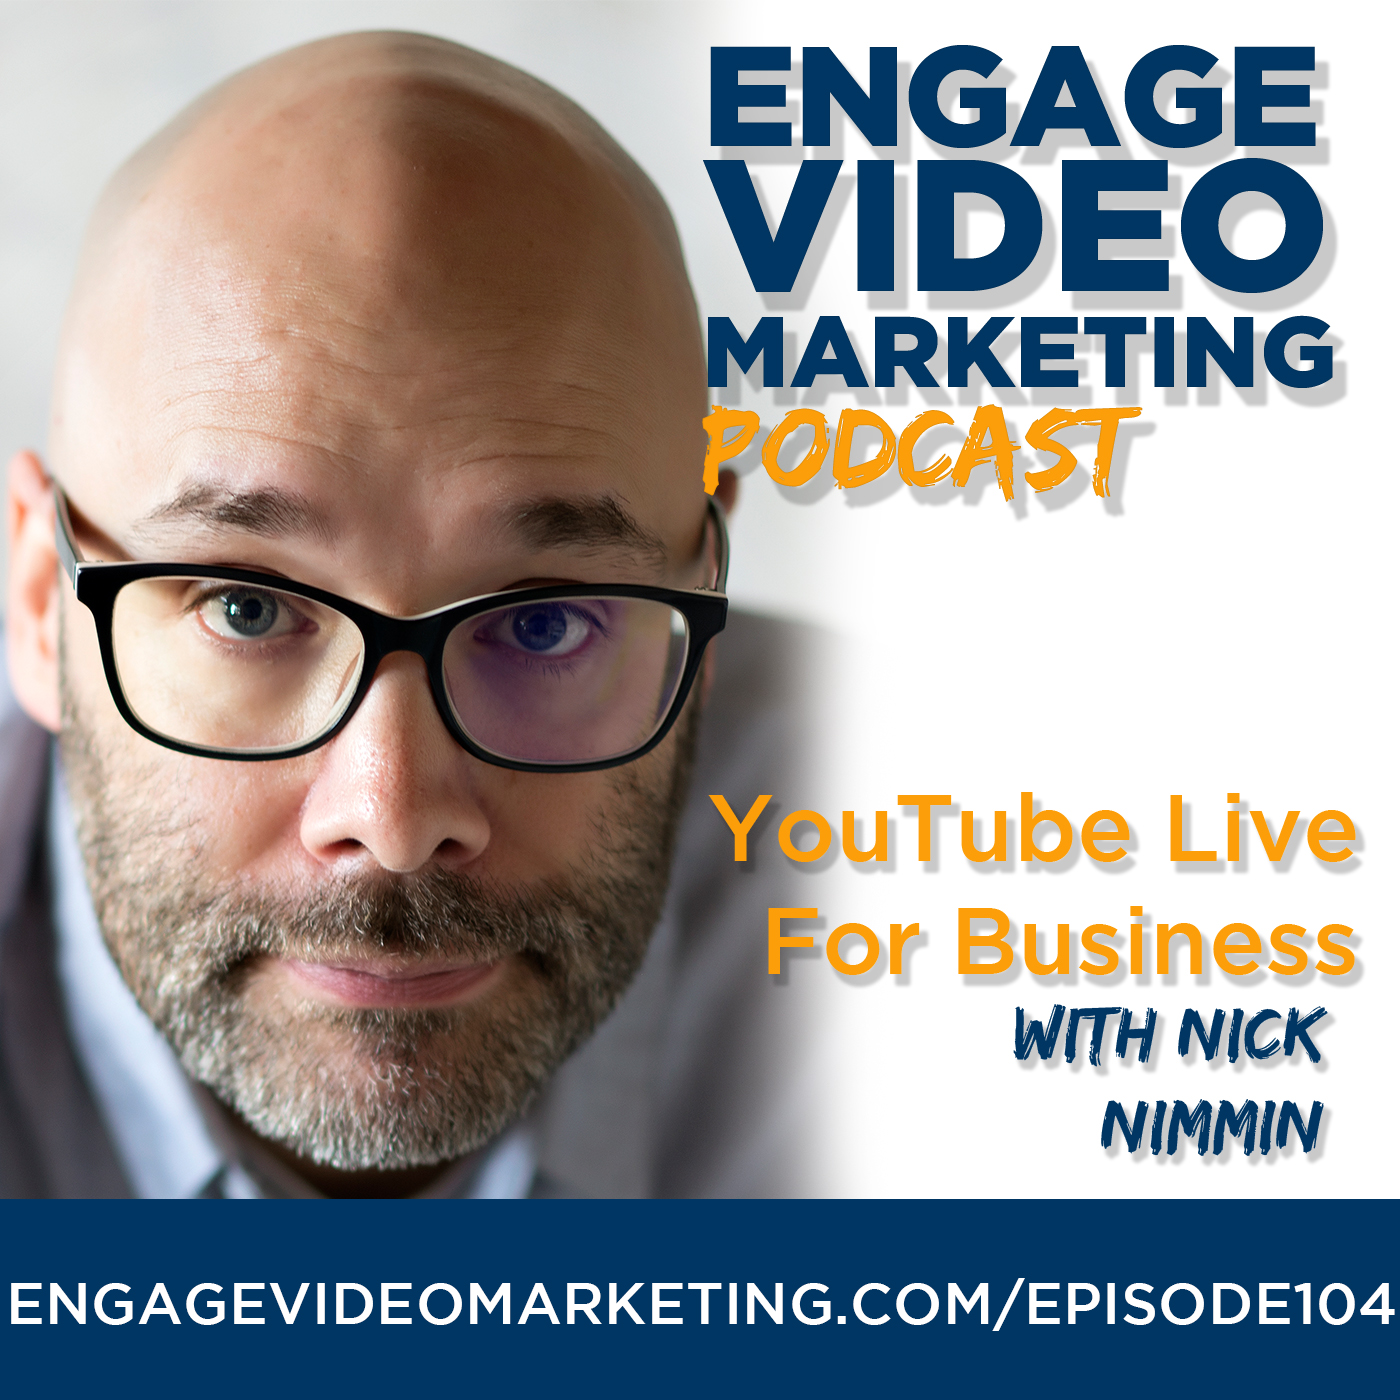 YouTube Live for Business with Nick Nimmin